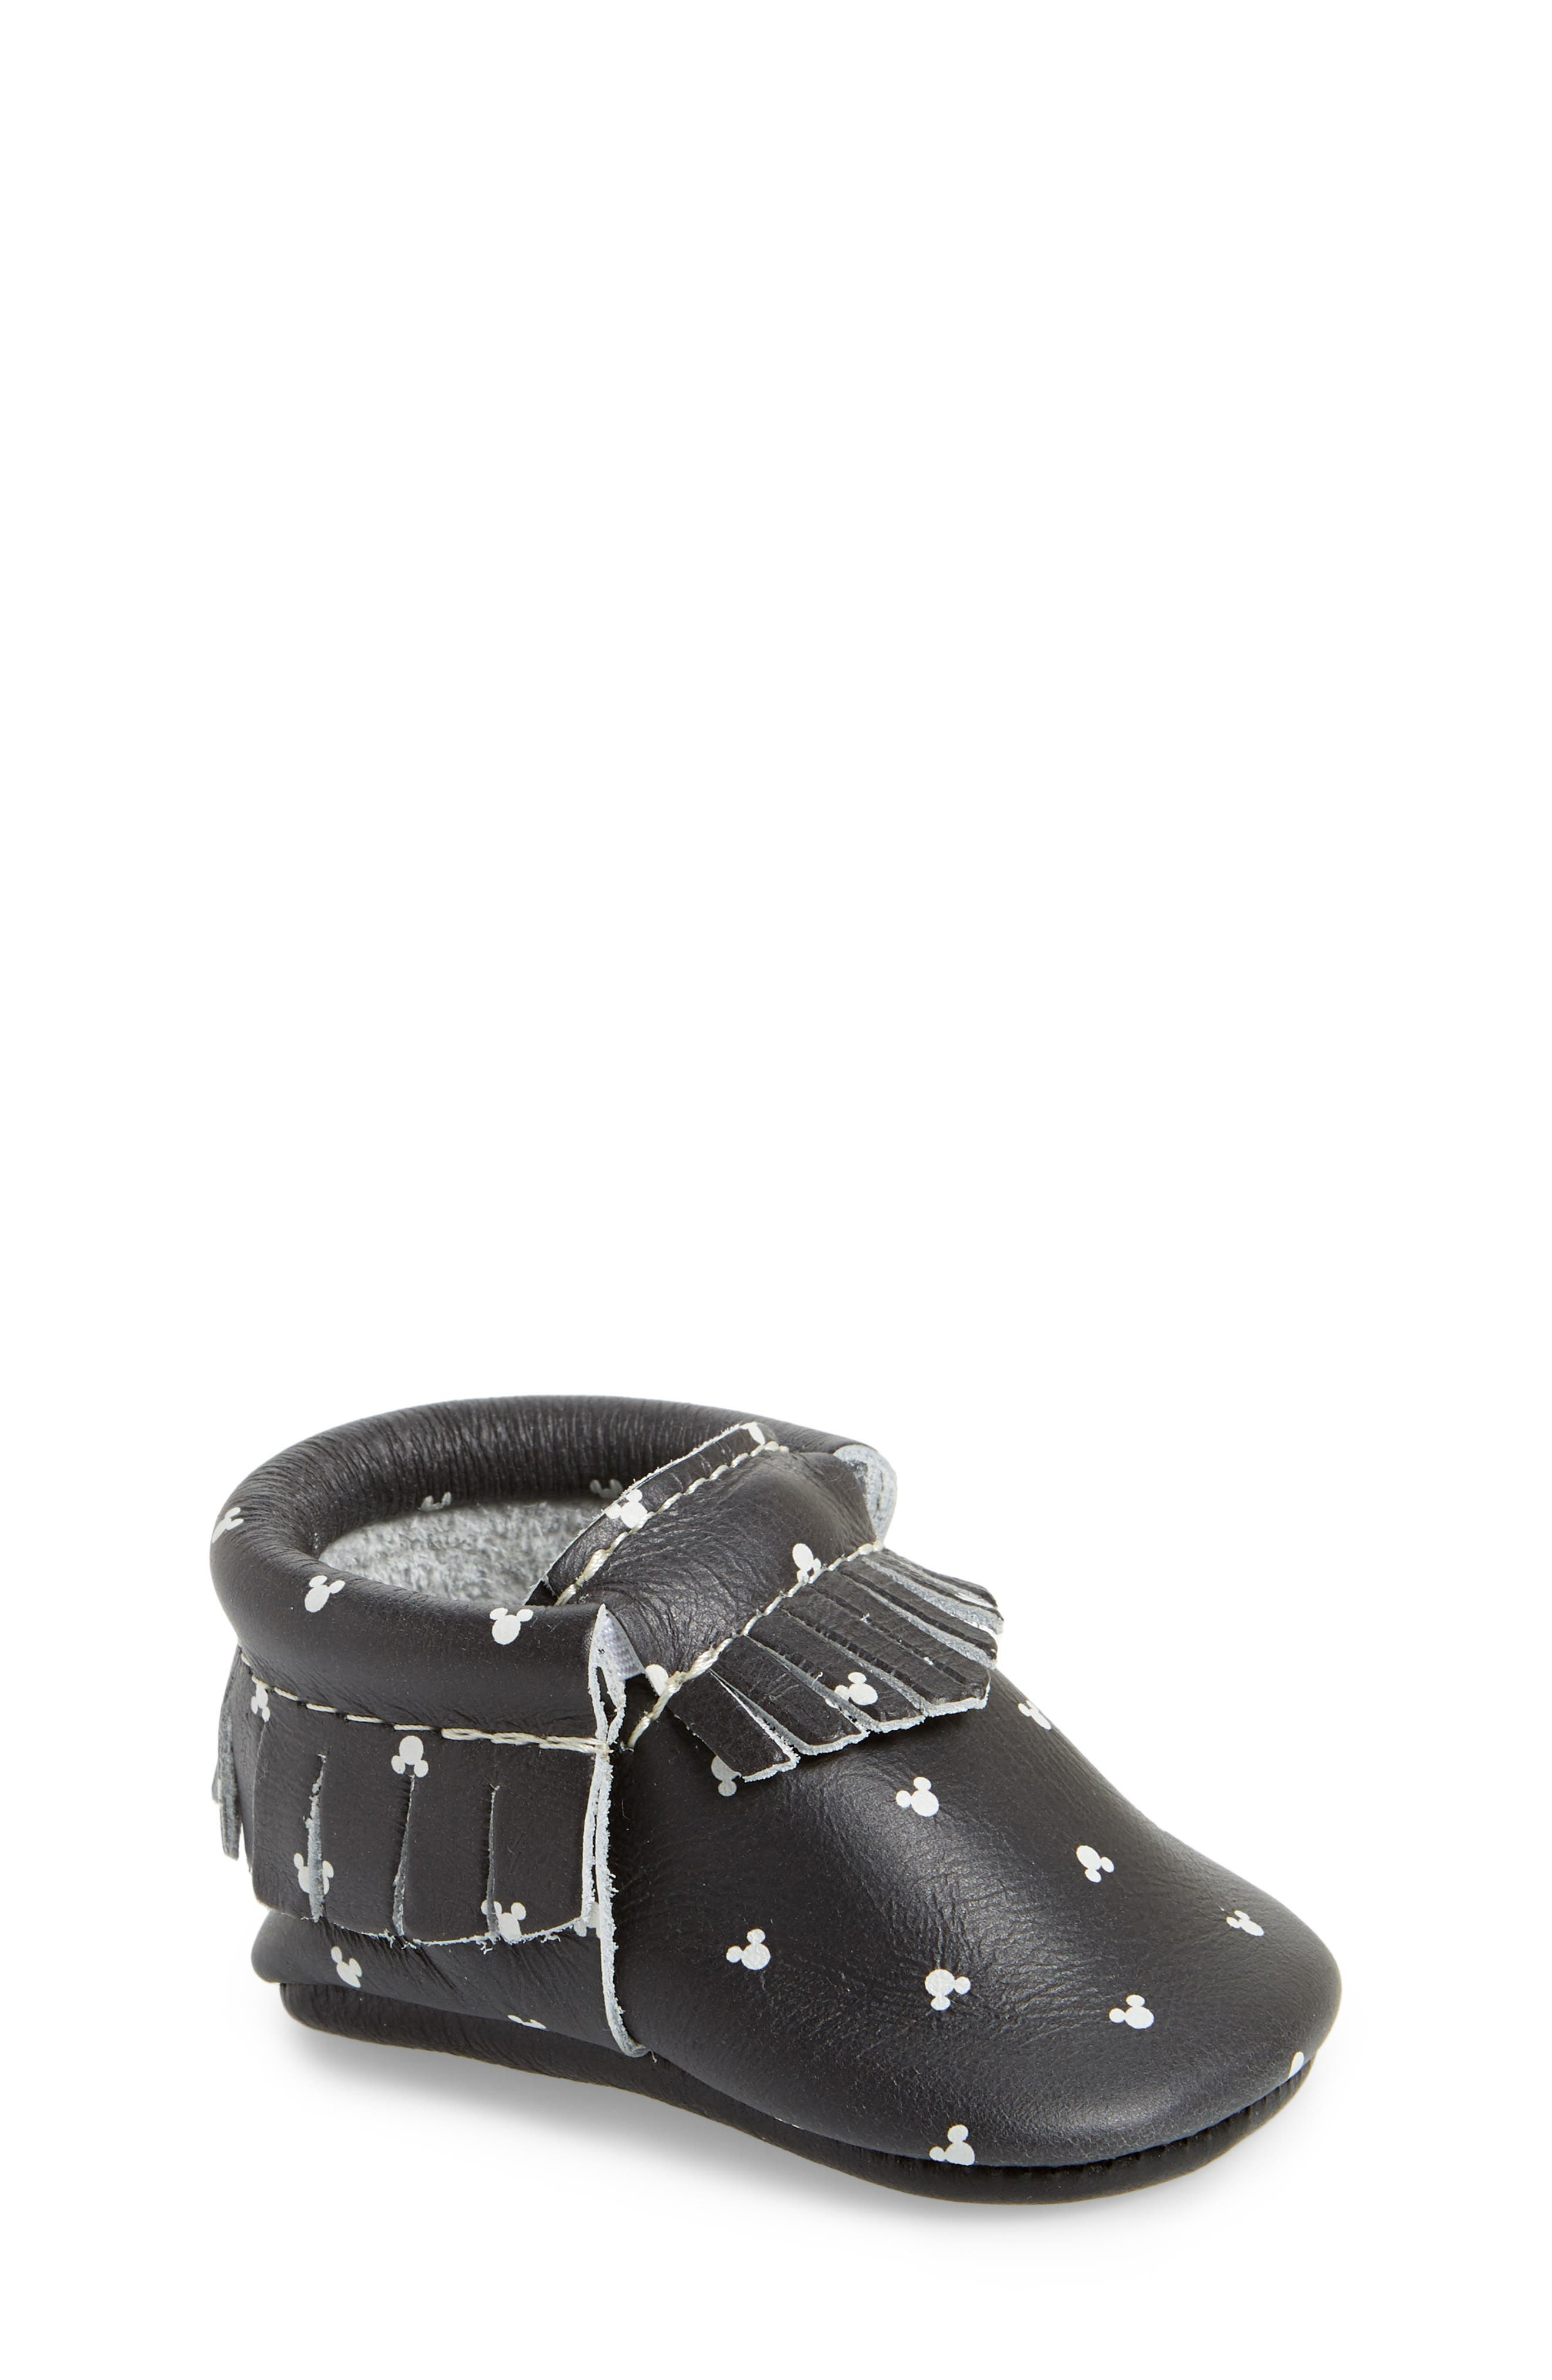 x Disney<sup>®</sup> Mouse Ears Print Moccasin,                         Main,                         color, Black Leather